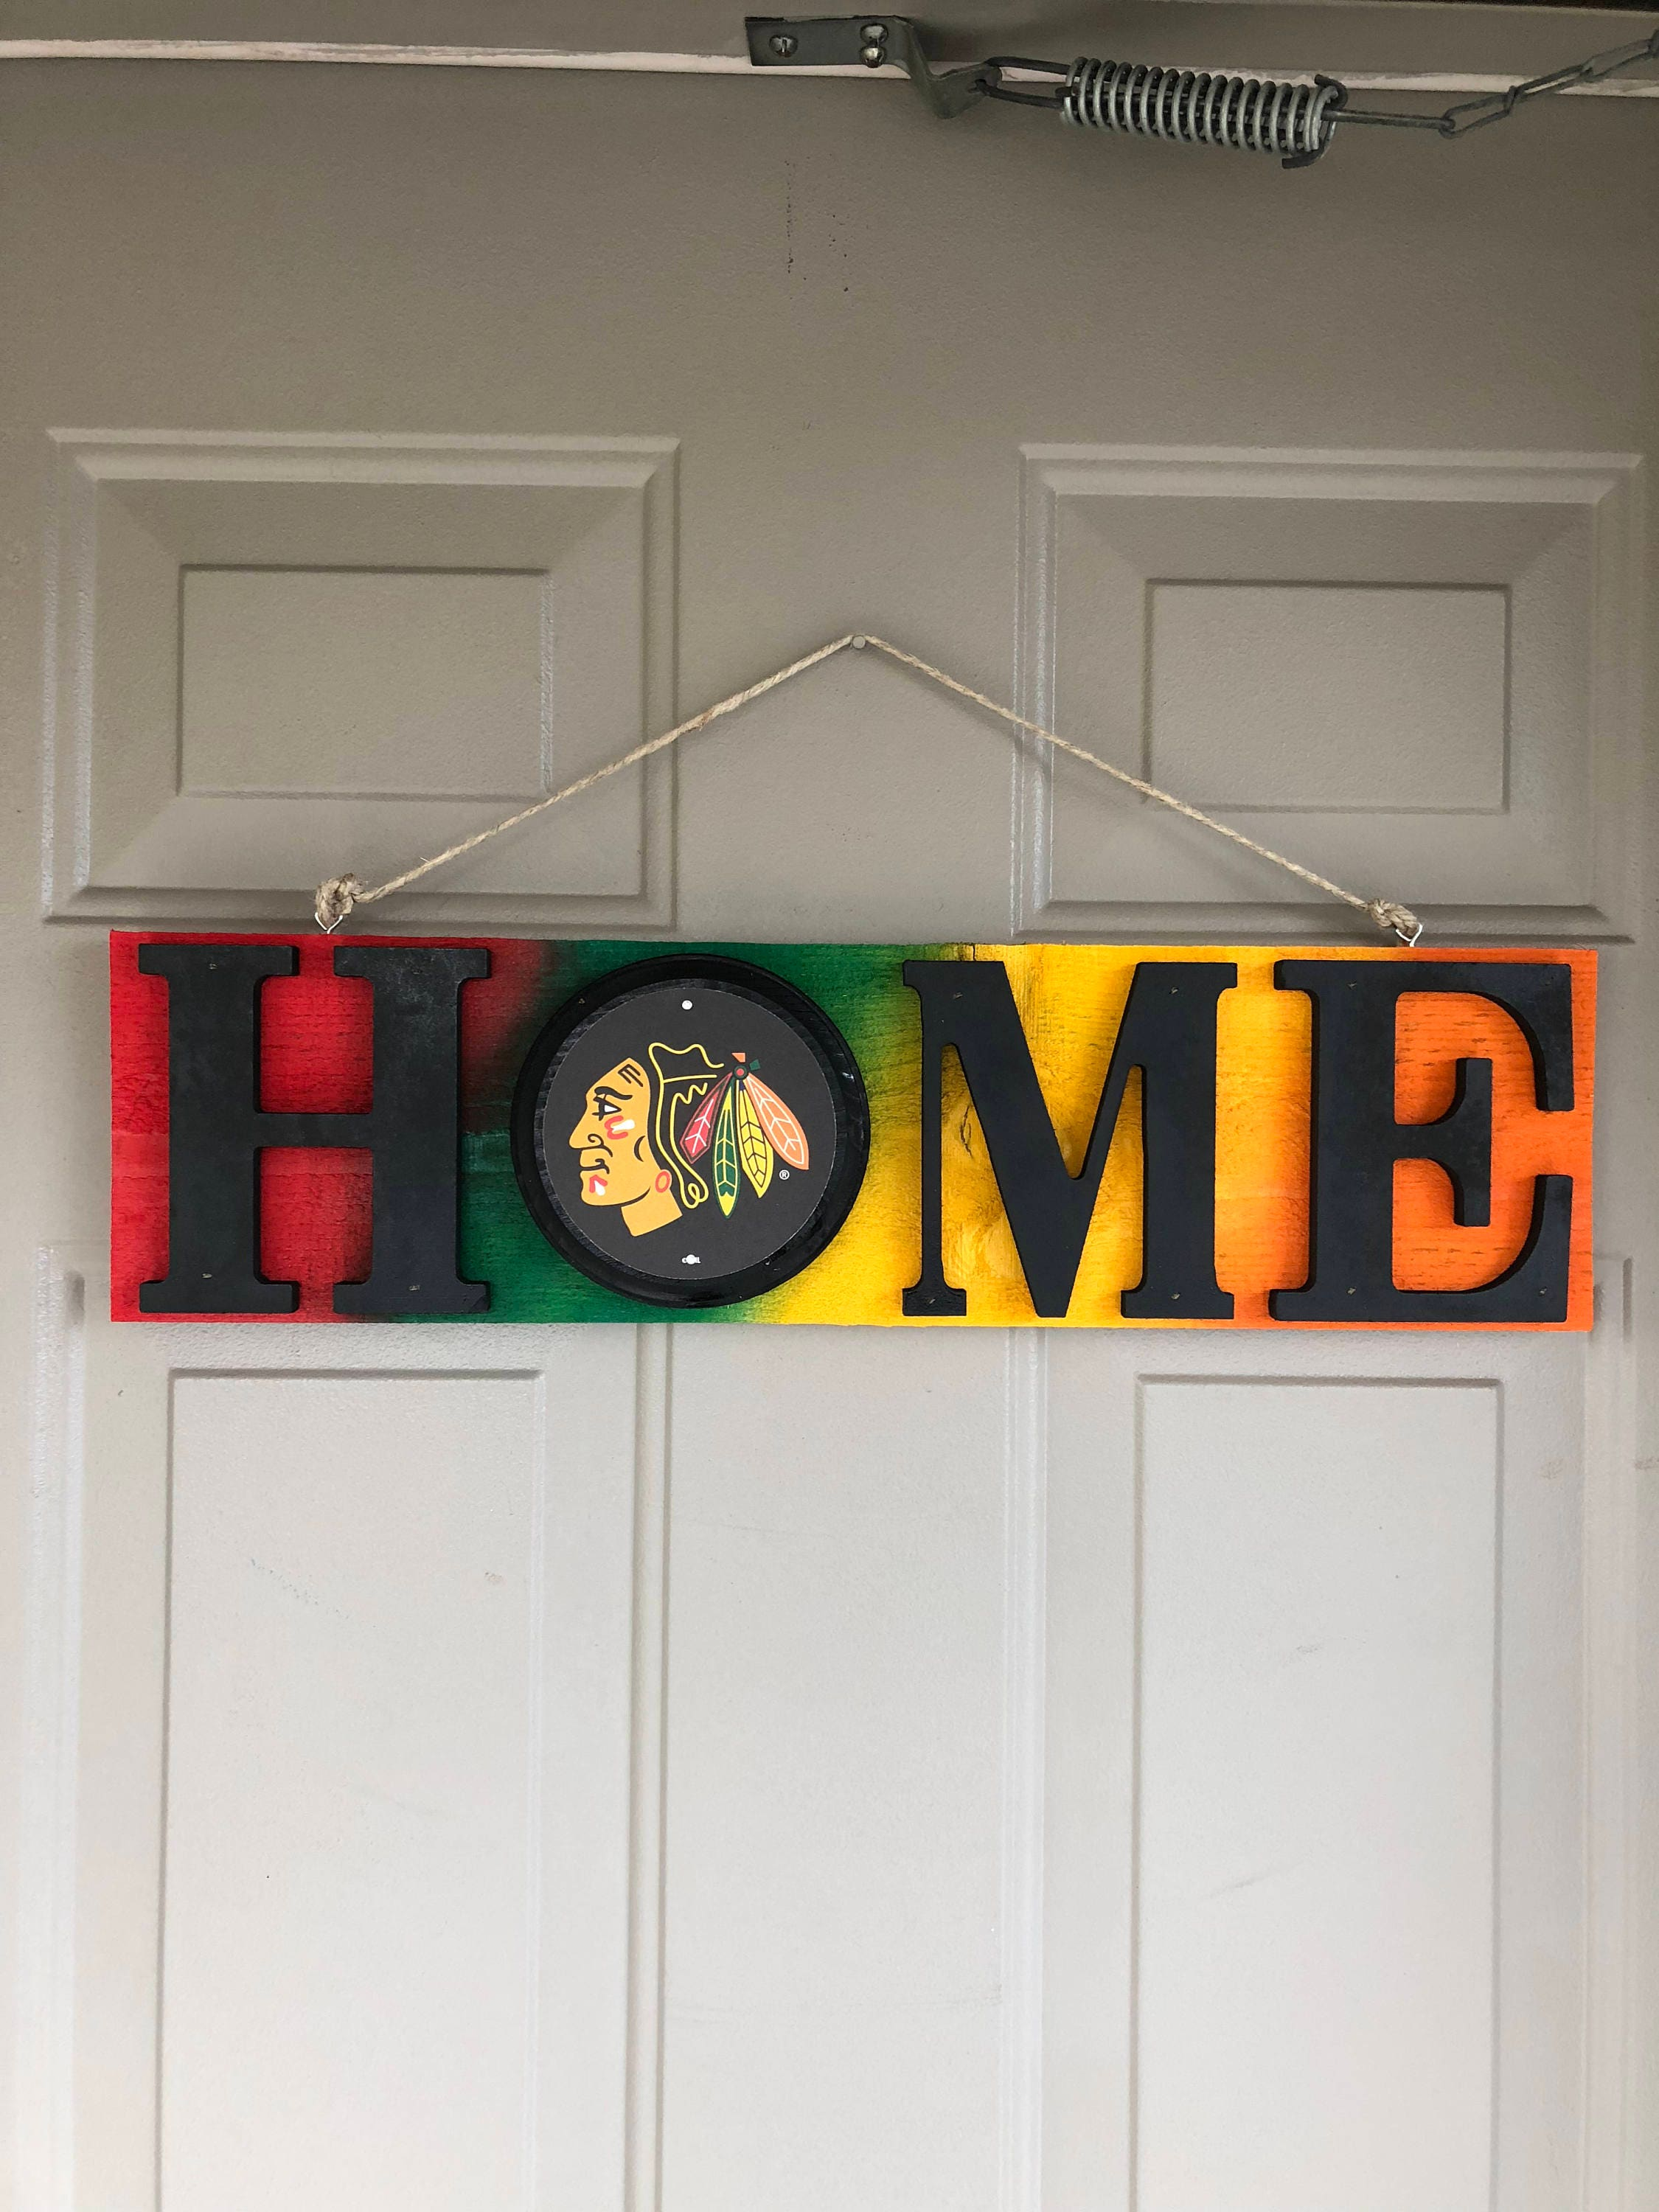 new styles a30f2 c577d Chicago Blackhawks | Chicago Blackhawks Gifts | Chicago Blackhawks Signs |  Chicago Blackhawks Decor | Chicago Blackhawks Fan